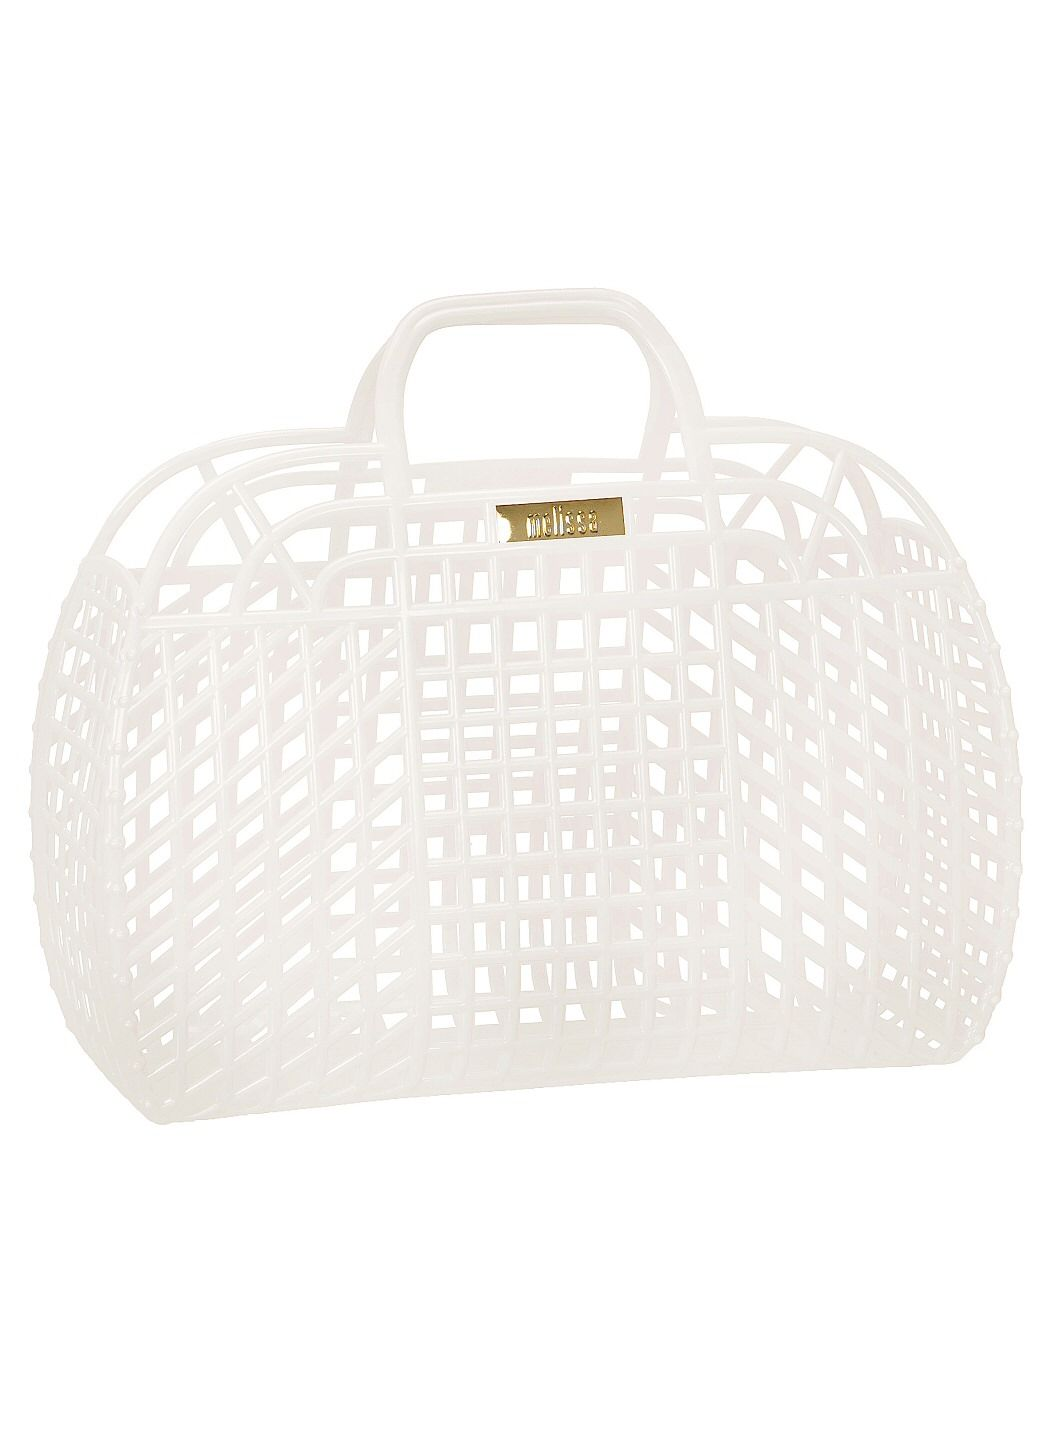 Refraction Bag White Melissa Plastic - Beach Bag | Alexis ...